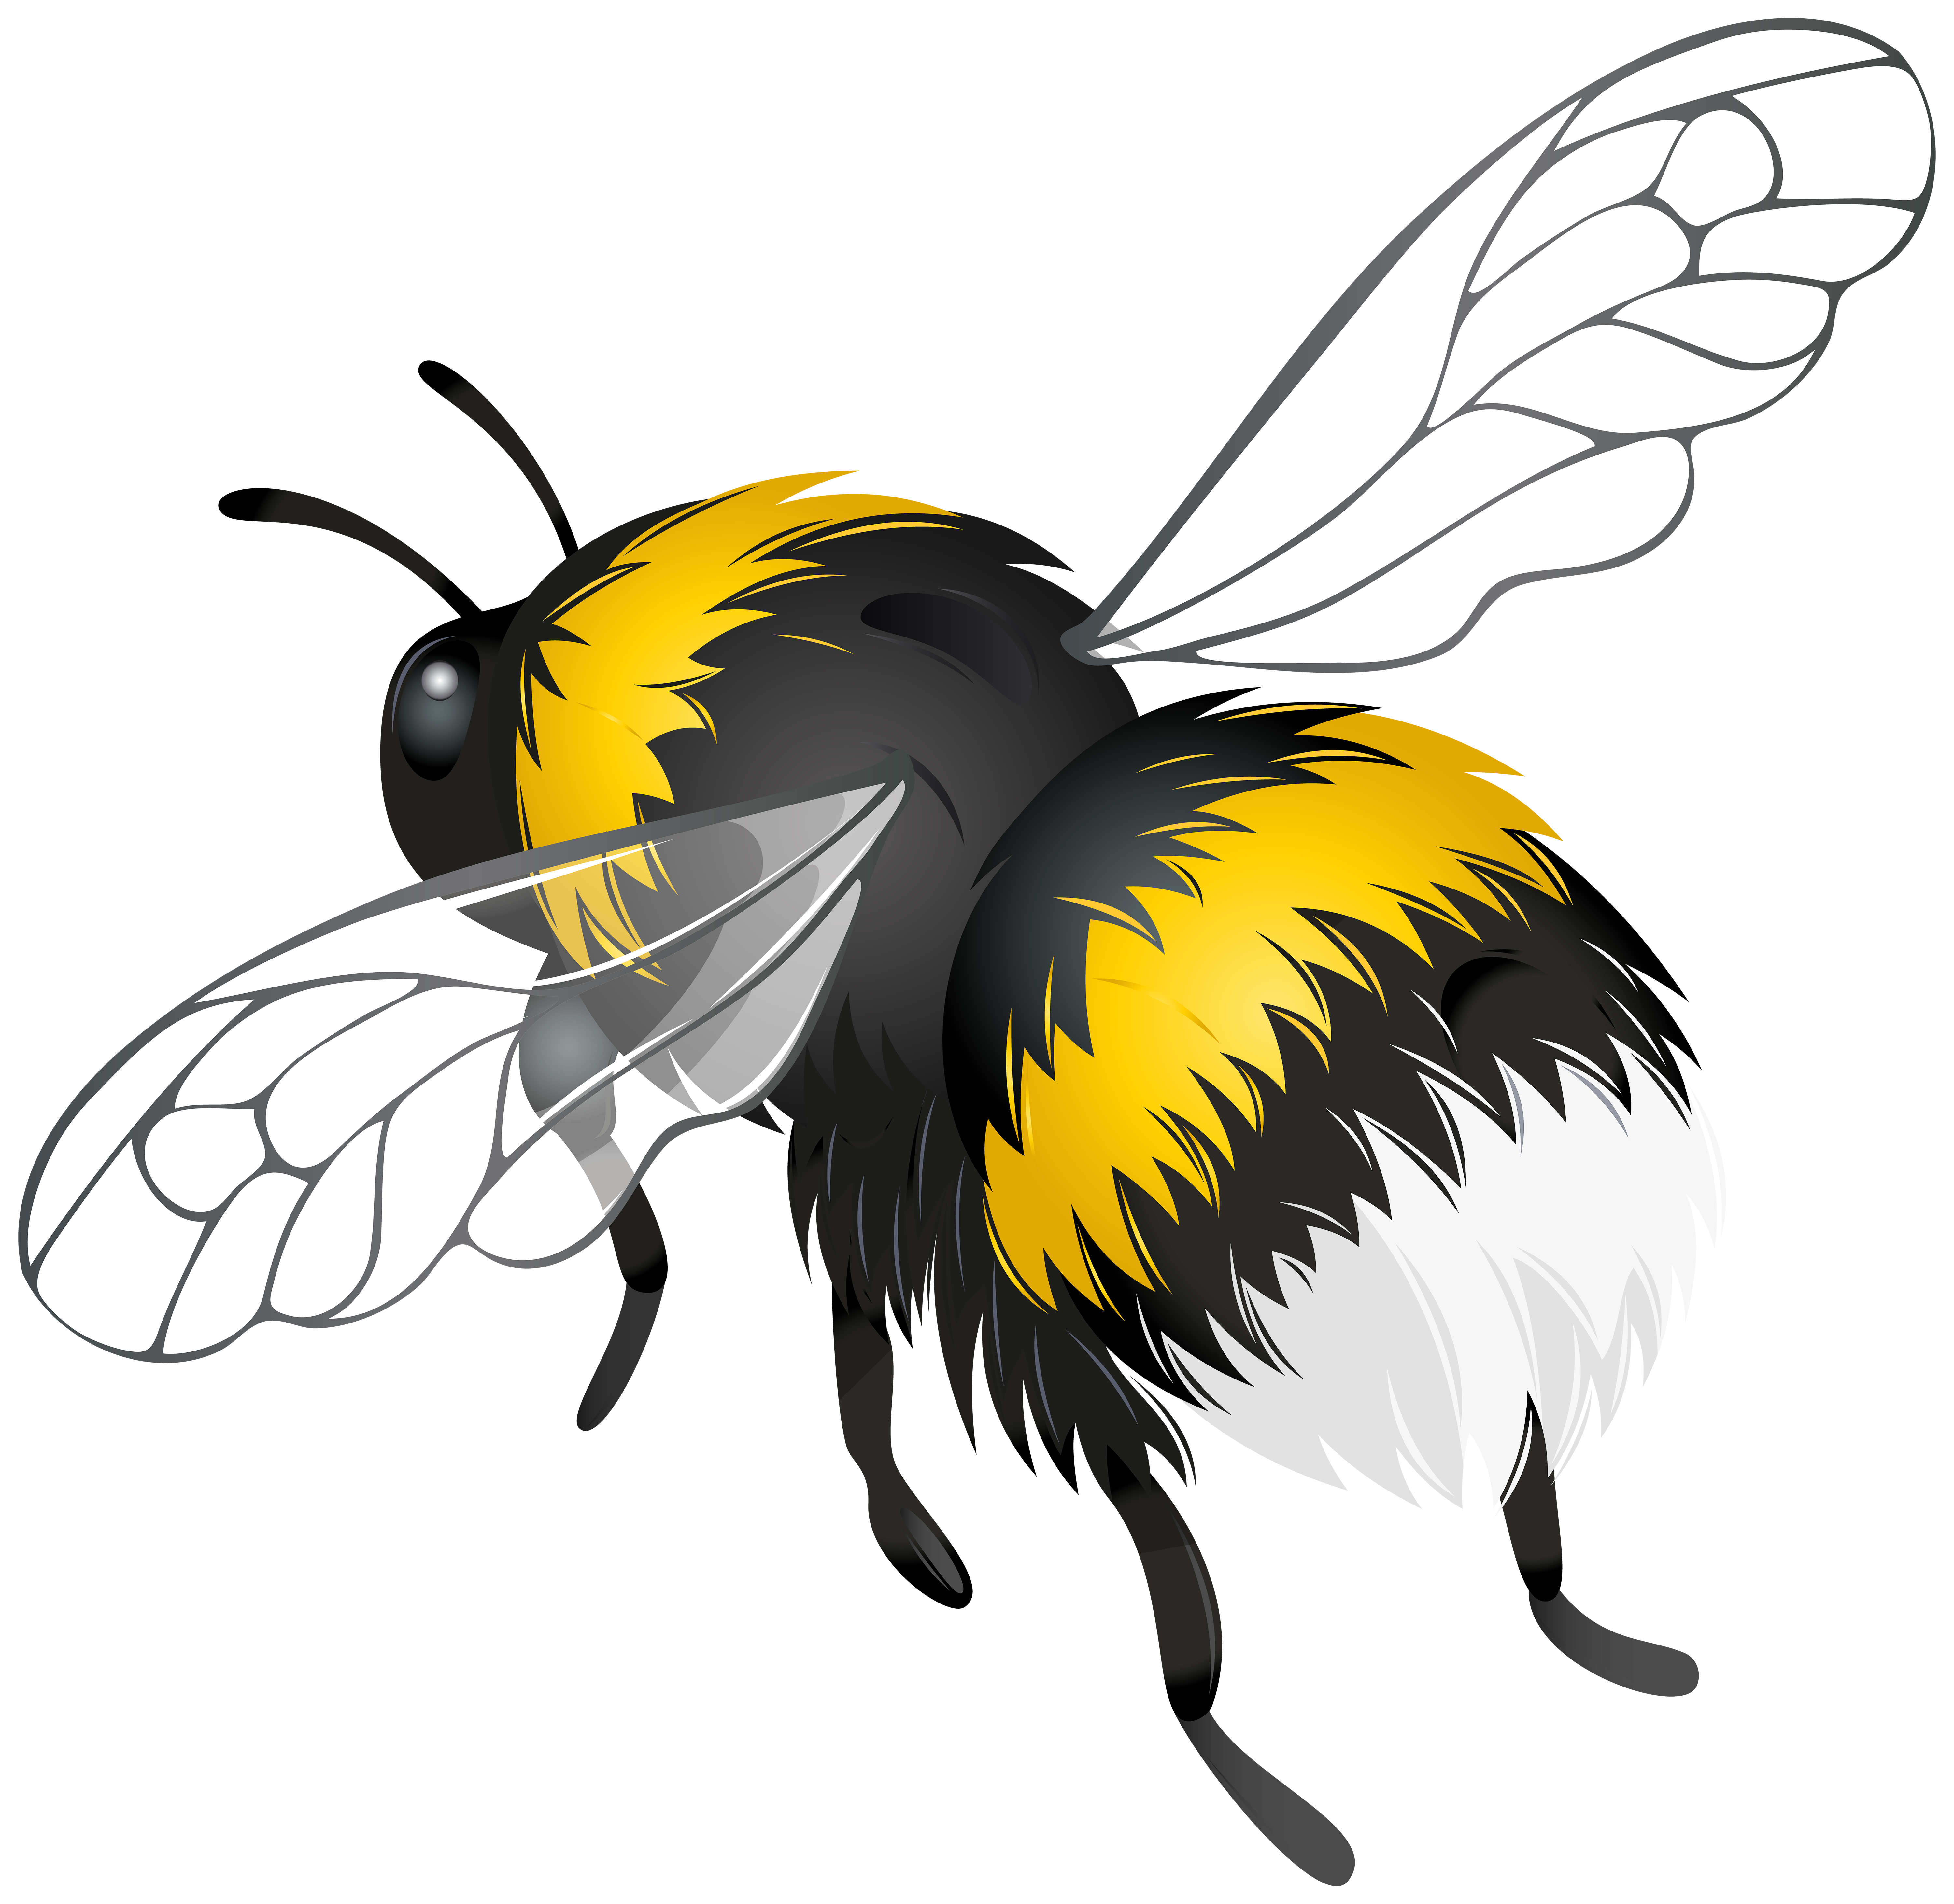 Clipart birds bee, Clipart birds bee Transparent FREE for.